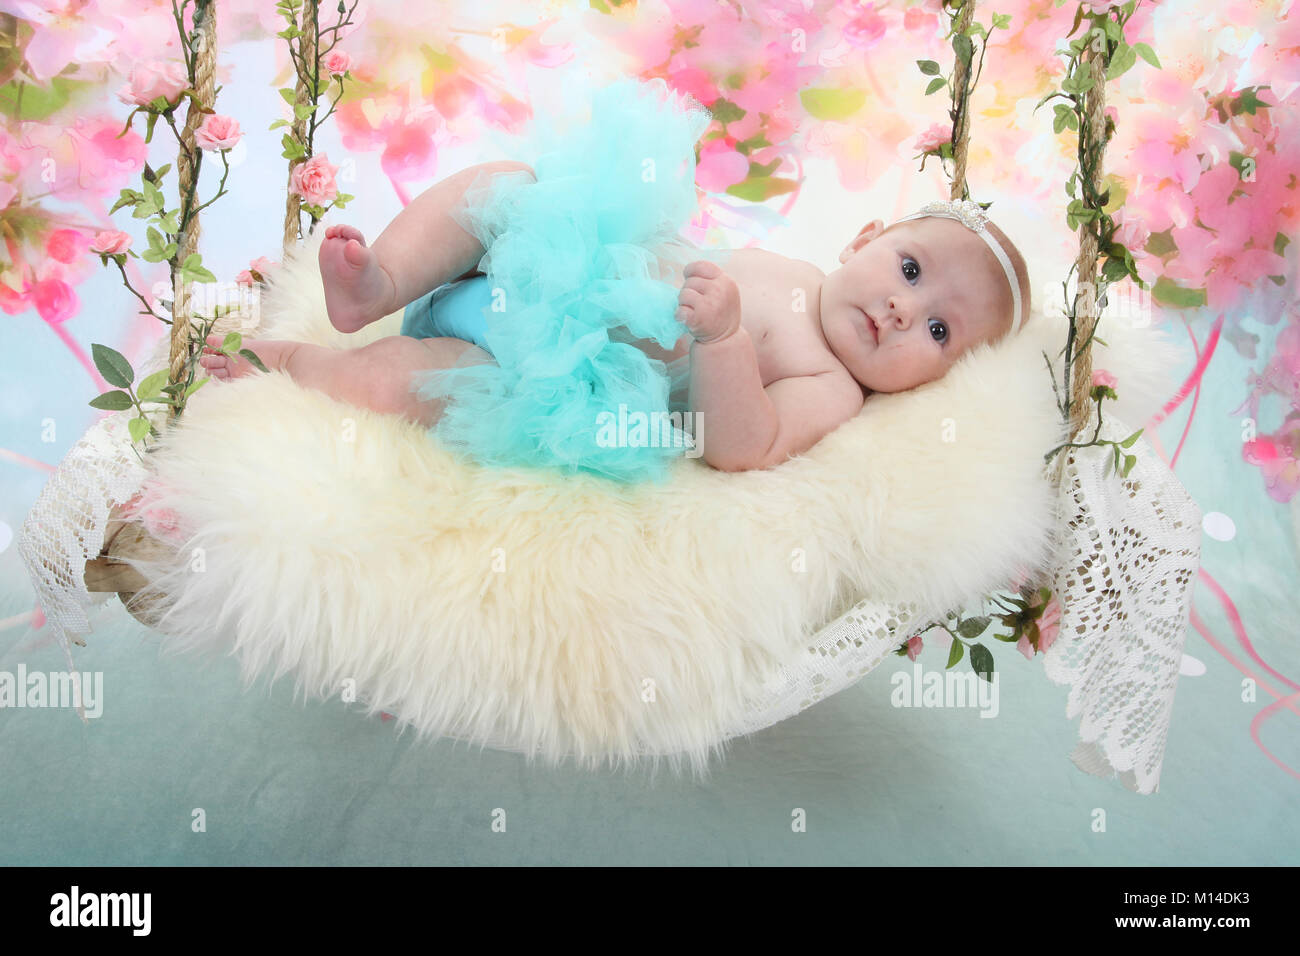 15 week old baby girl laying down relaxing on sensory bed - Stock Image